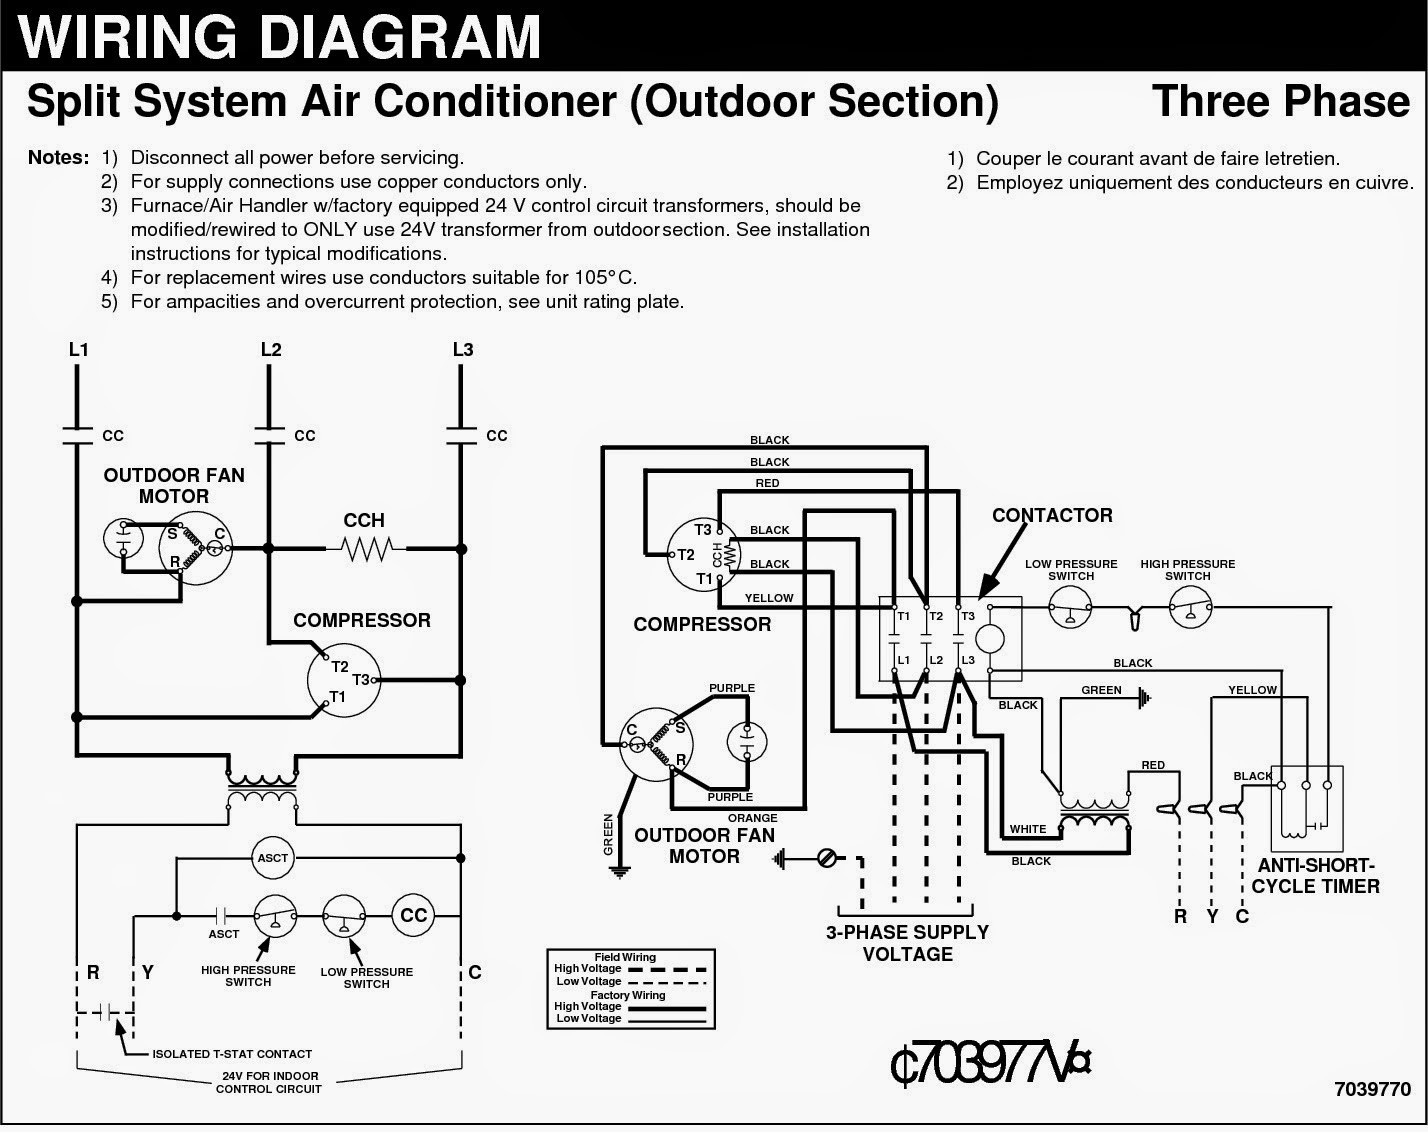 3 Phase Schematic Wiring Diagram Online Manuual Of Single Transformer Ac Voltage Electrical Diagrams Simple Rh 28 Mara Cujas De For Dummies